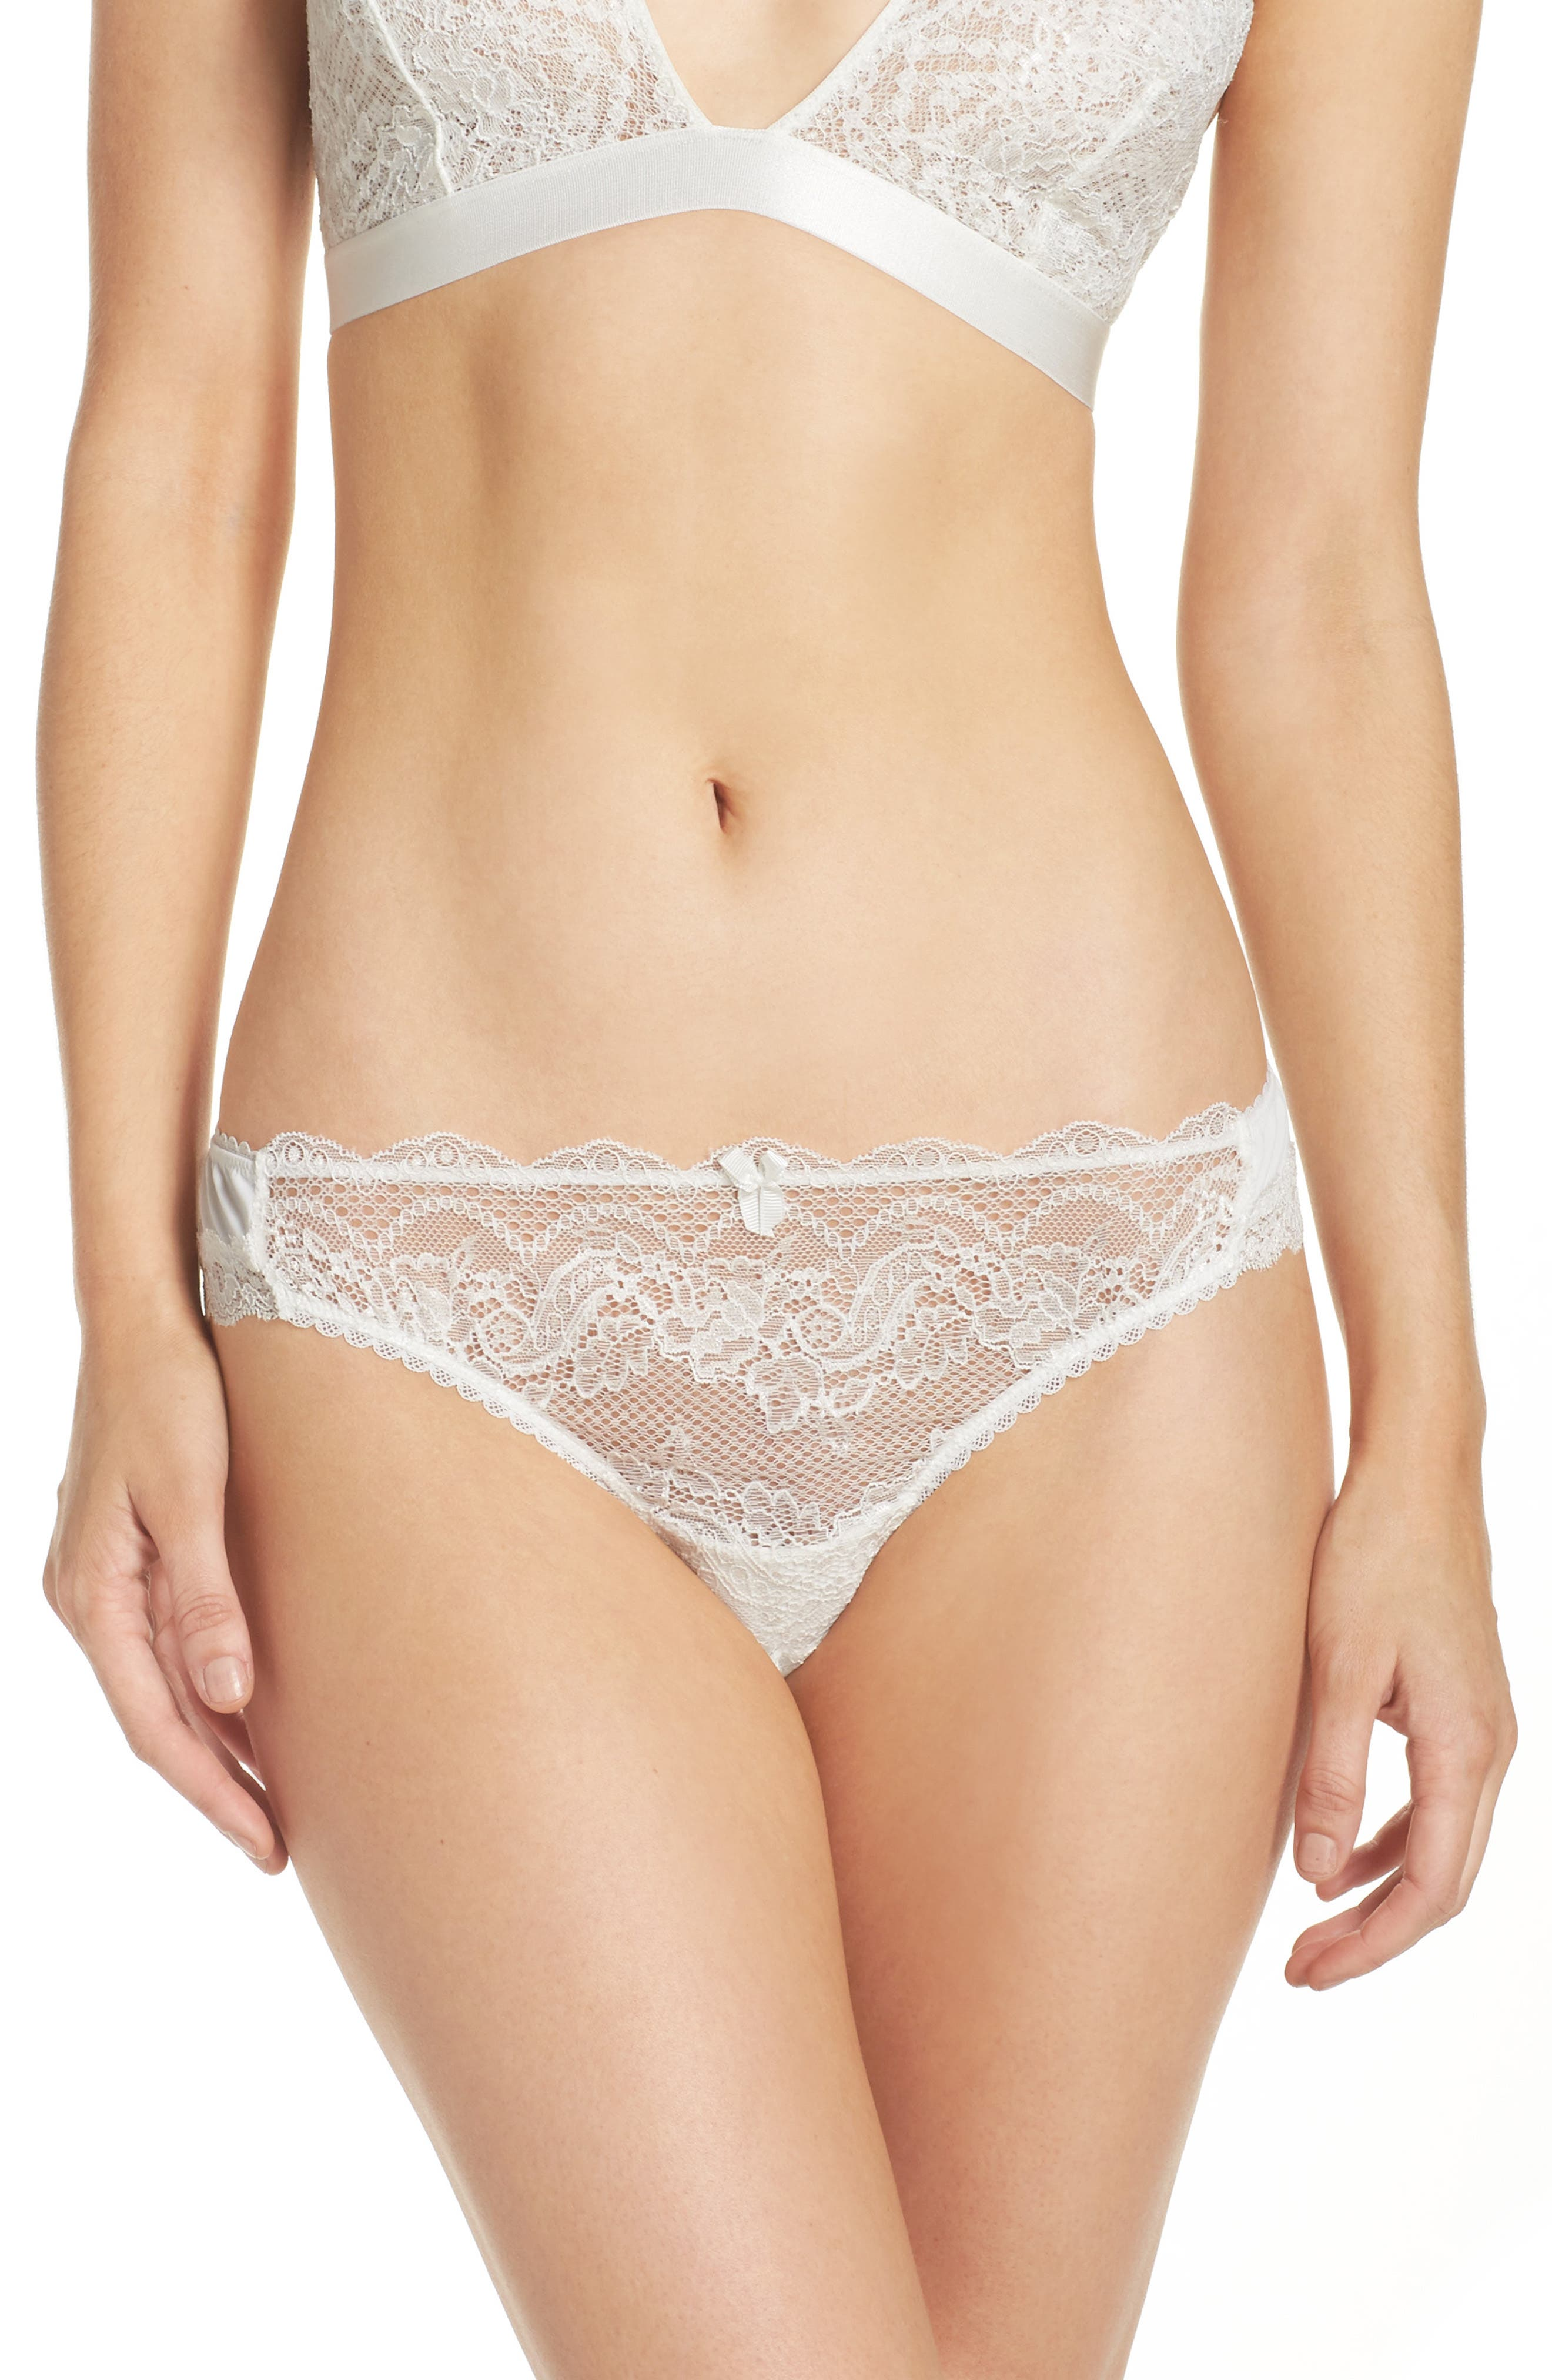 Mimi Holliday Picture Perfect Lace Panties